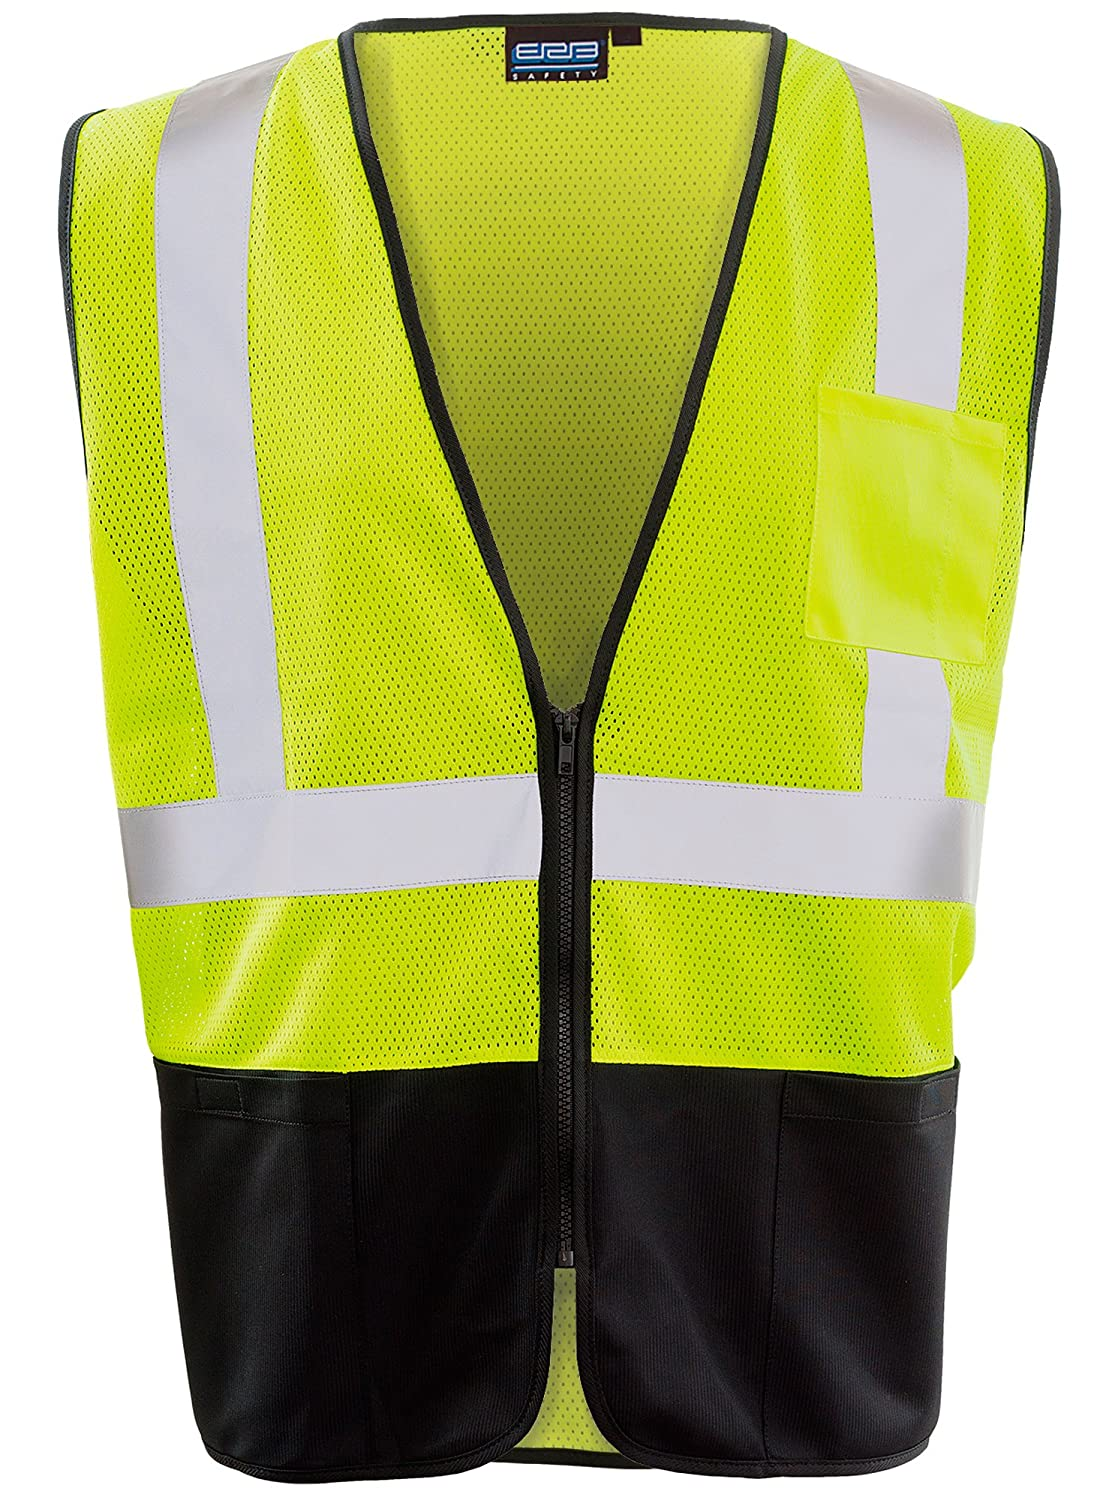 2XL ERB Safety Products 62253 ERB S3636PB HVL Zipper Economy Mesh Class 2 Vest Yellow